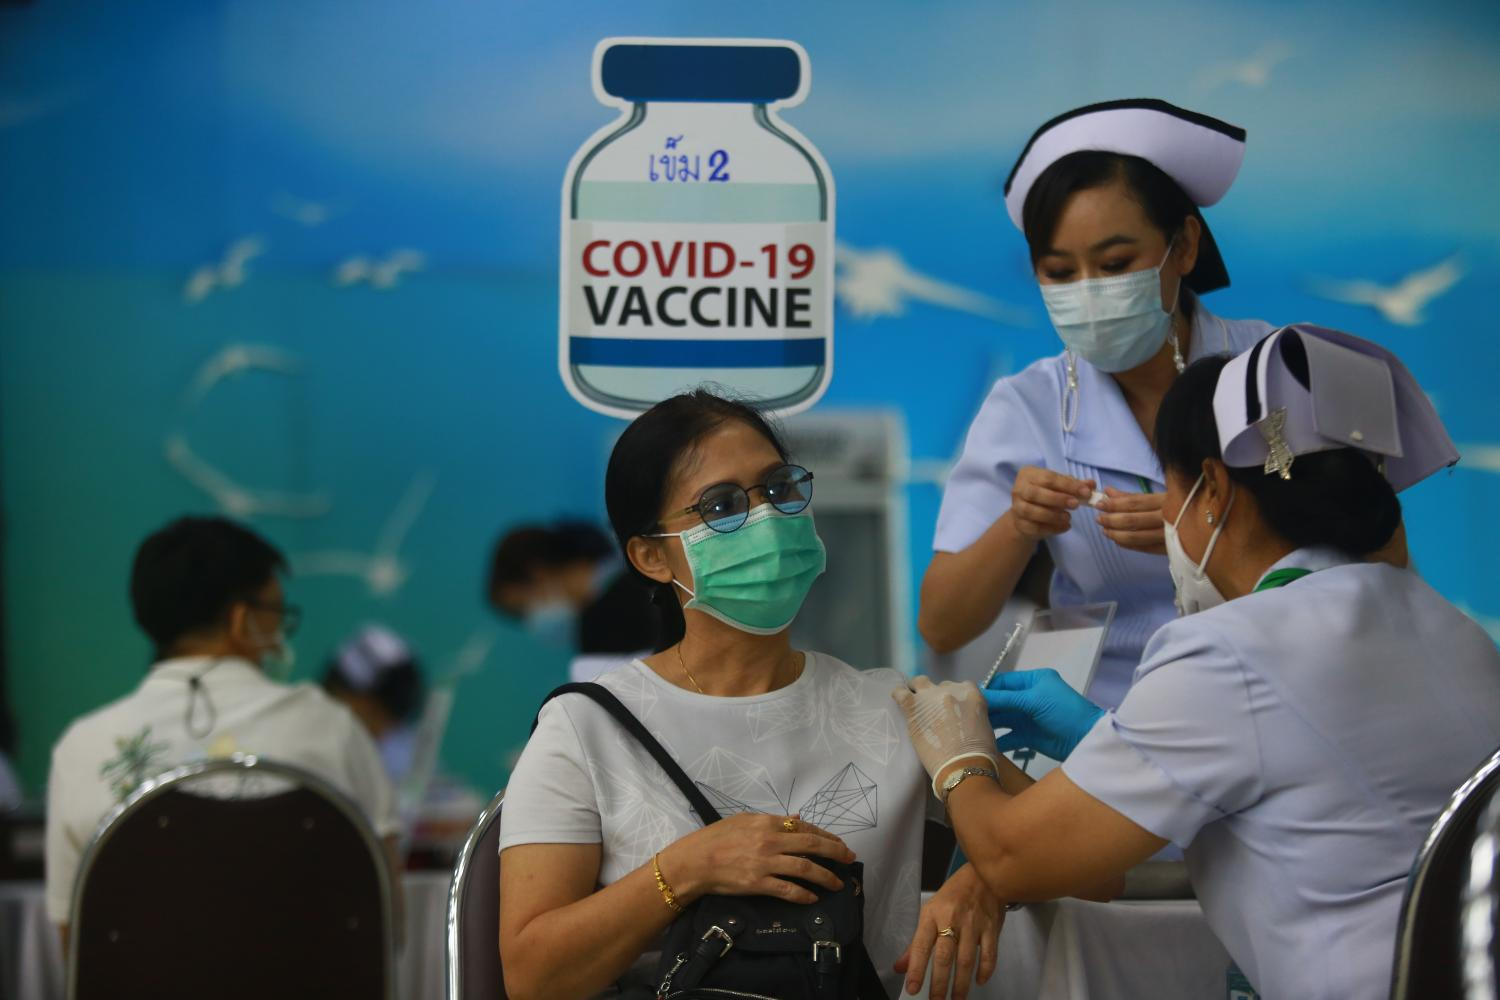 Medical workers administer the second dose of Covid-19 vaccine to people at Samutprakan Hospital. Somchai Poomlard